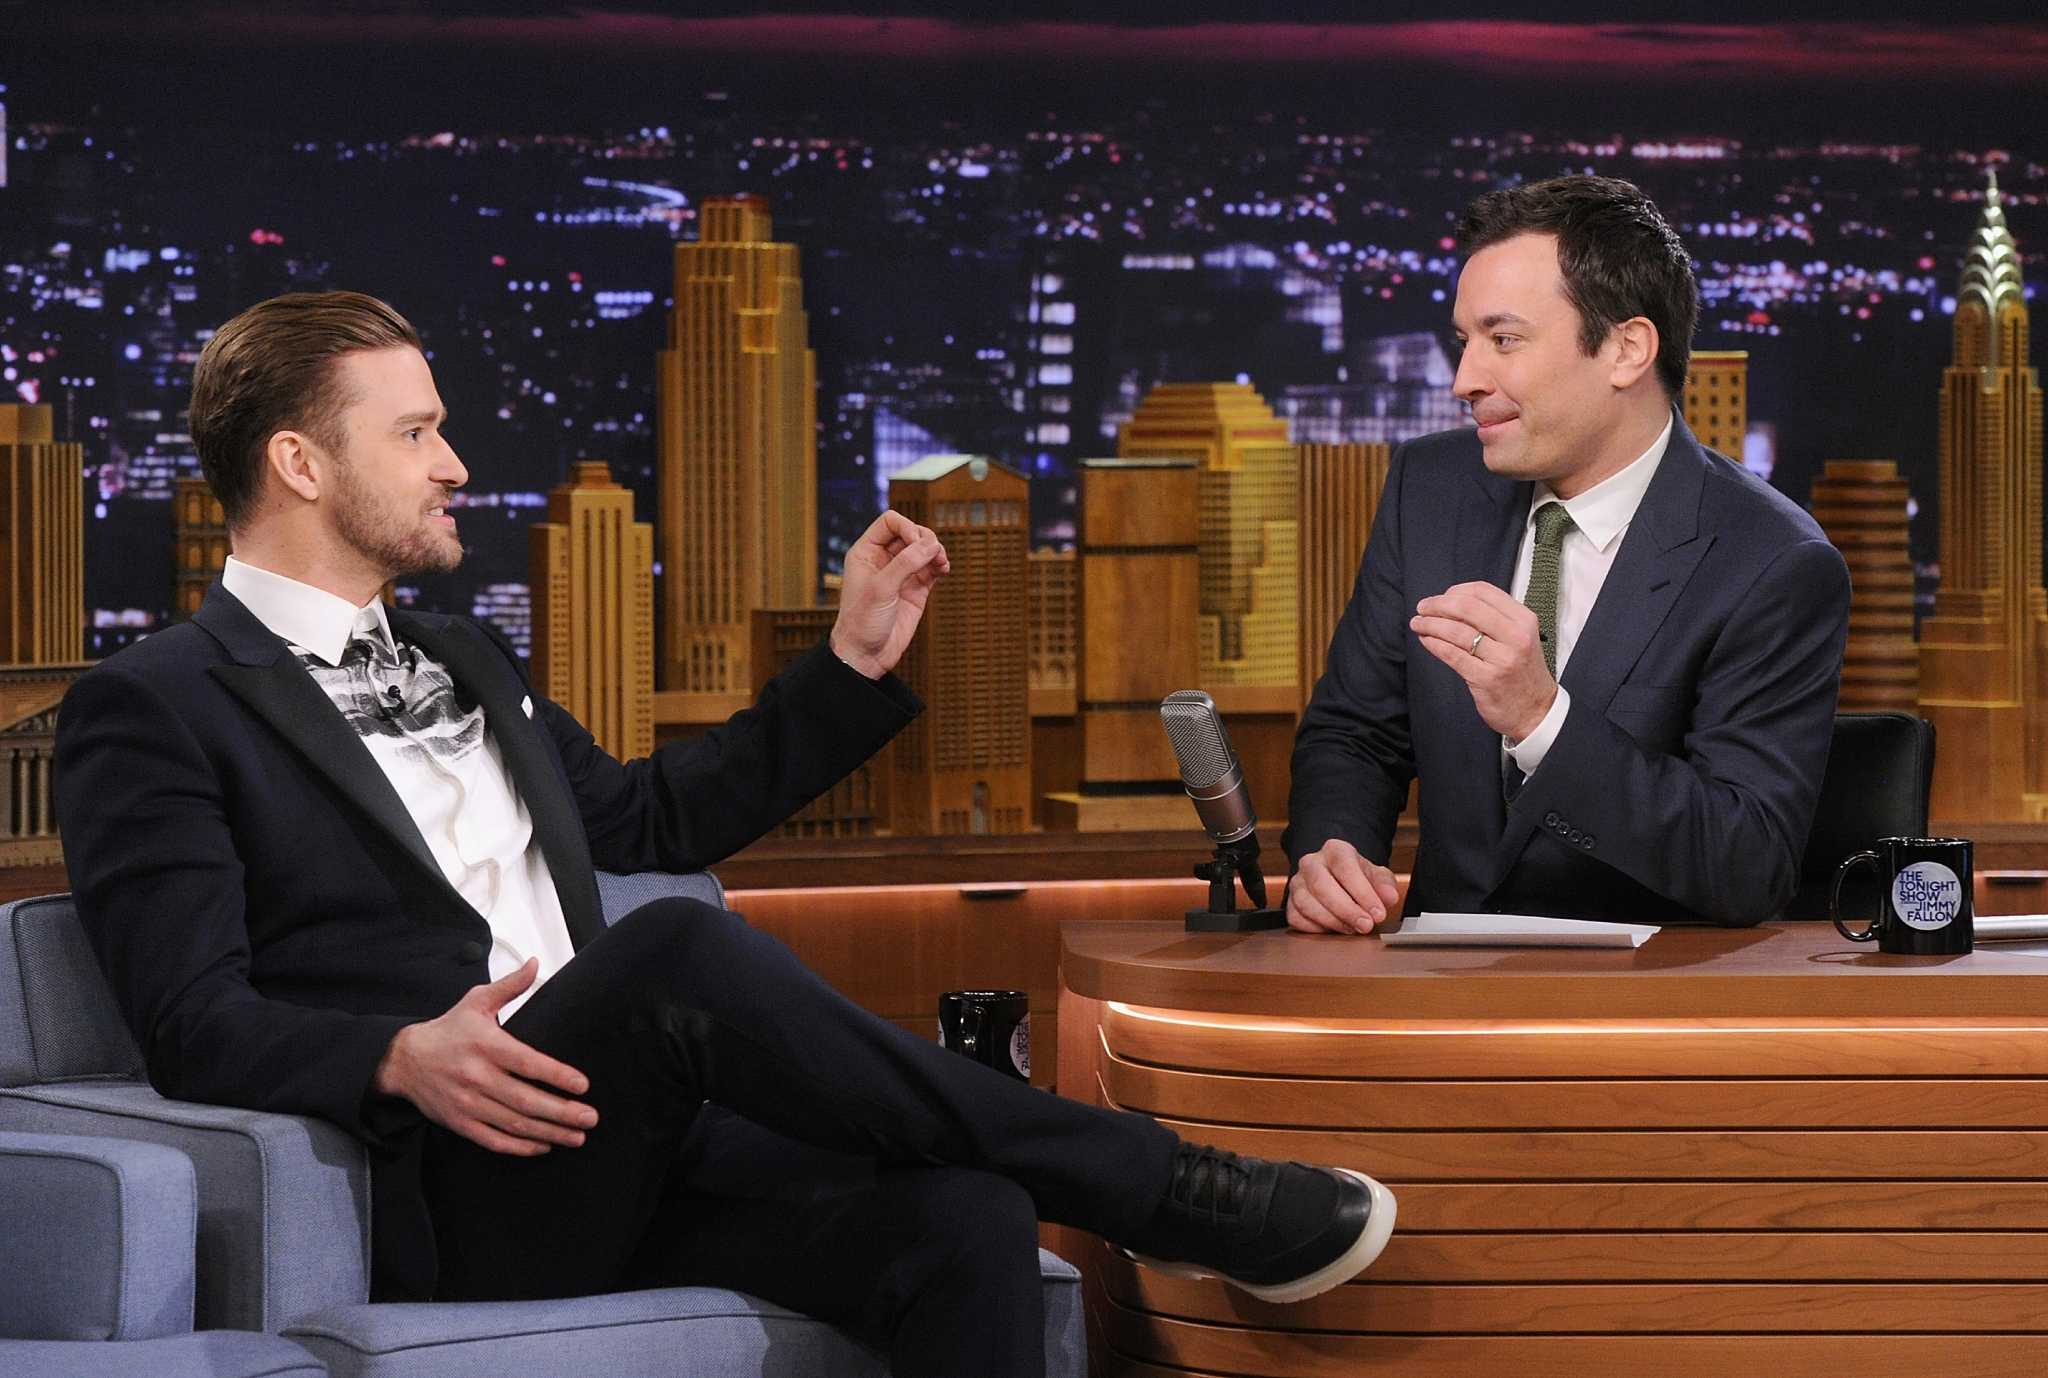 Jj watt on dancing fans and turning down a commercial houston actormusician justin timberlake left is interviewed by host jimmy fallon on the kristyandbryce Image collections